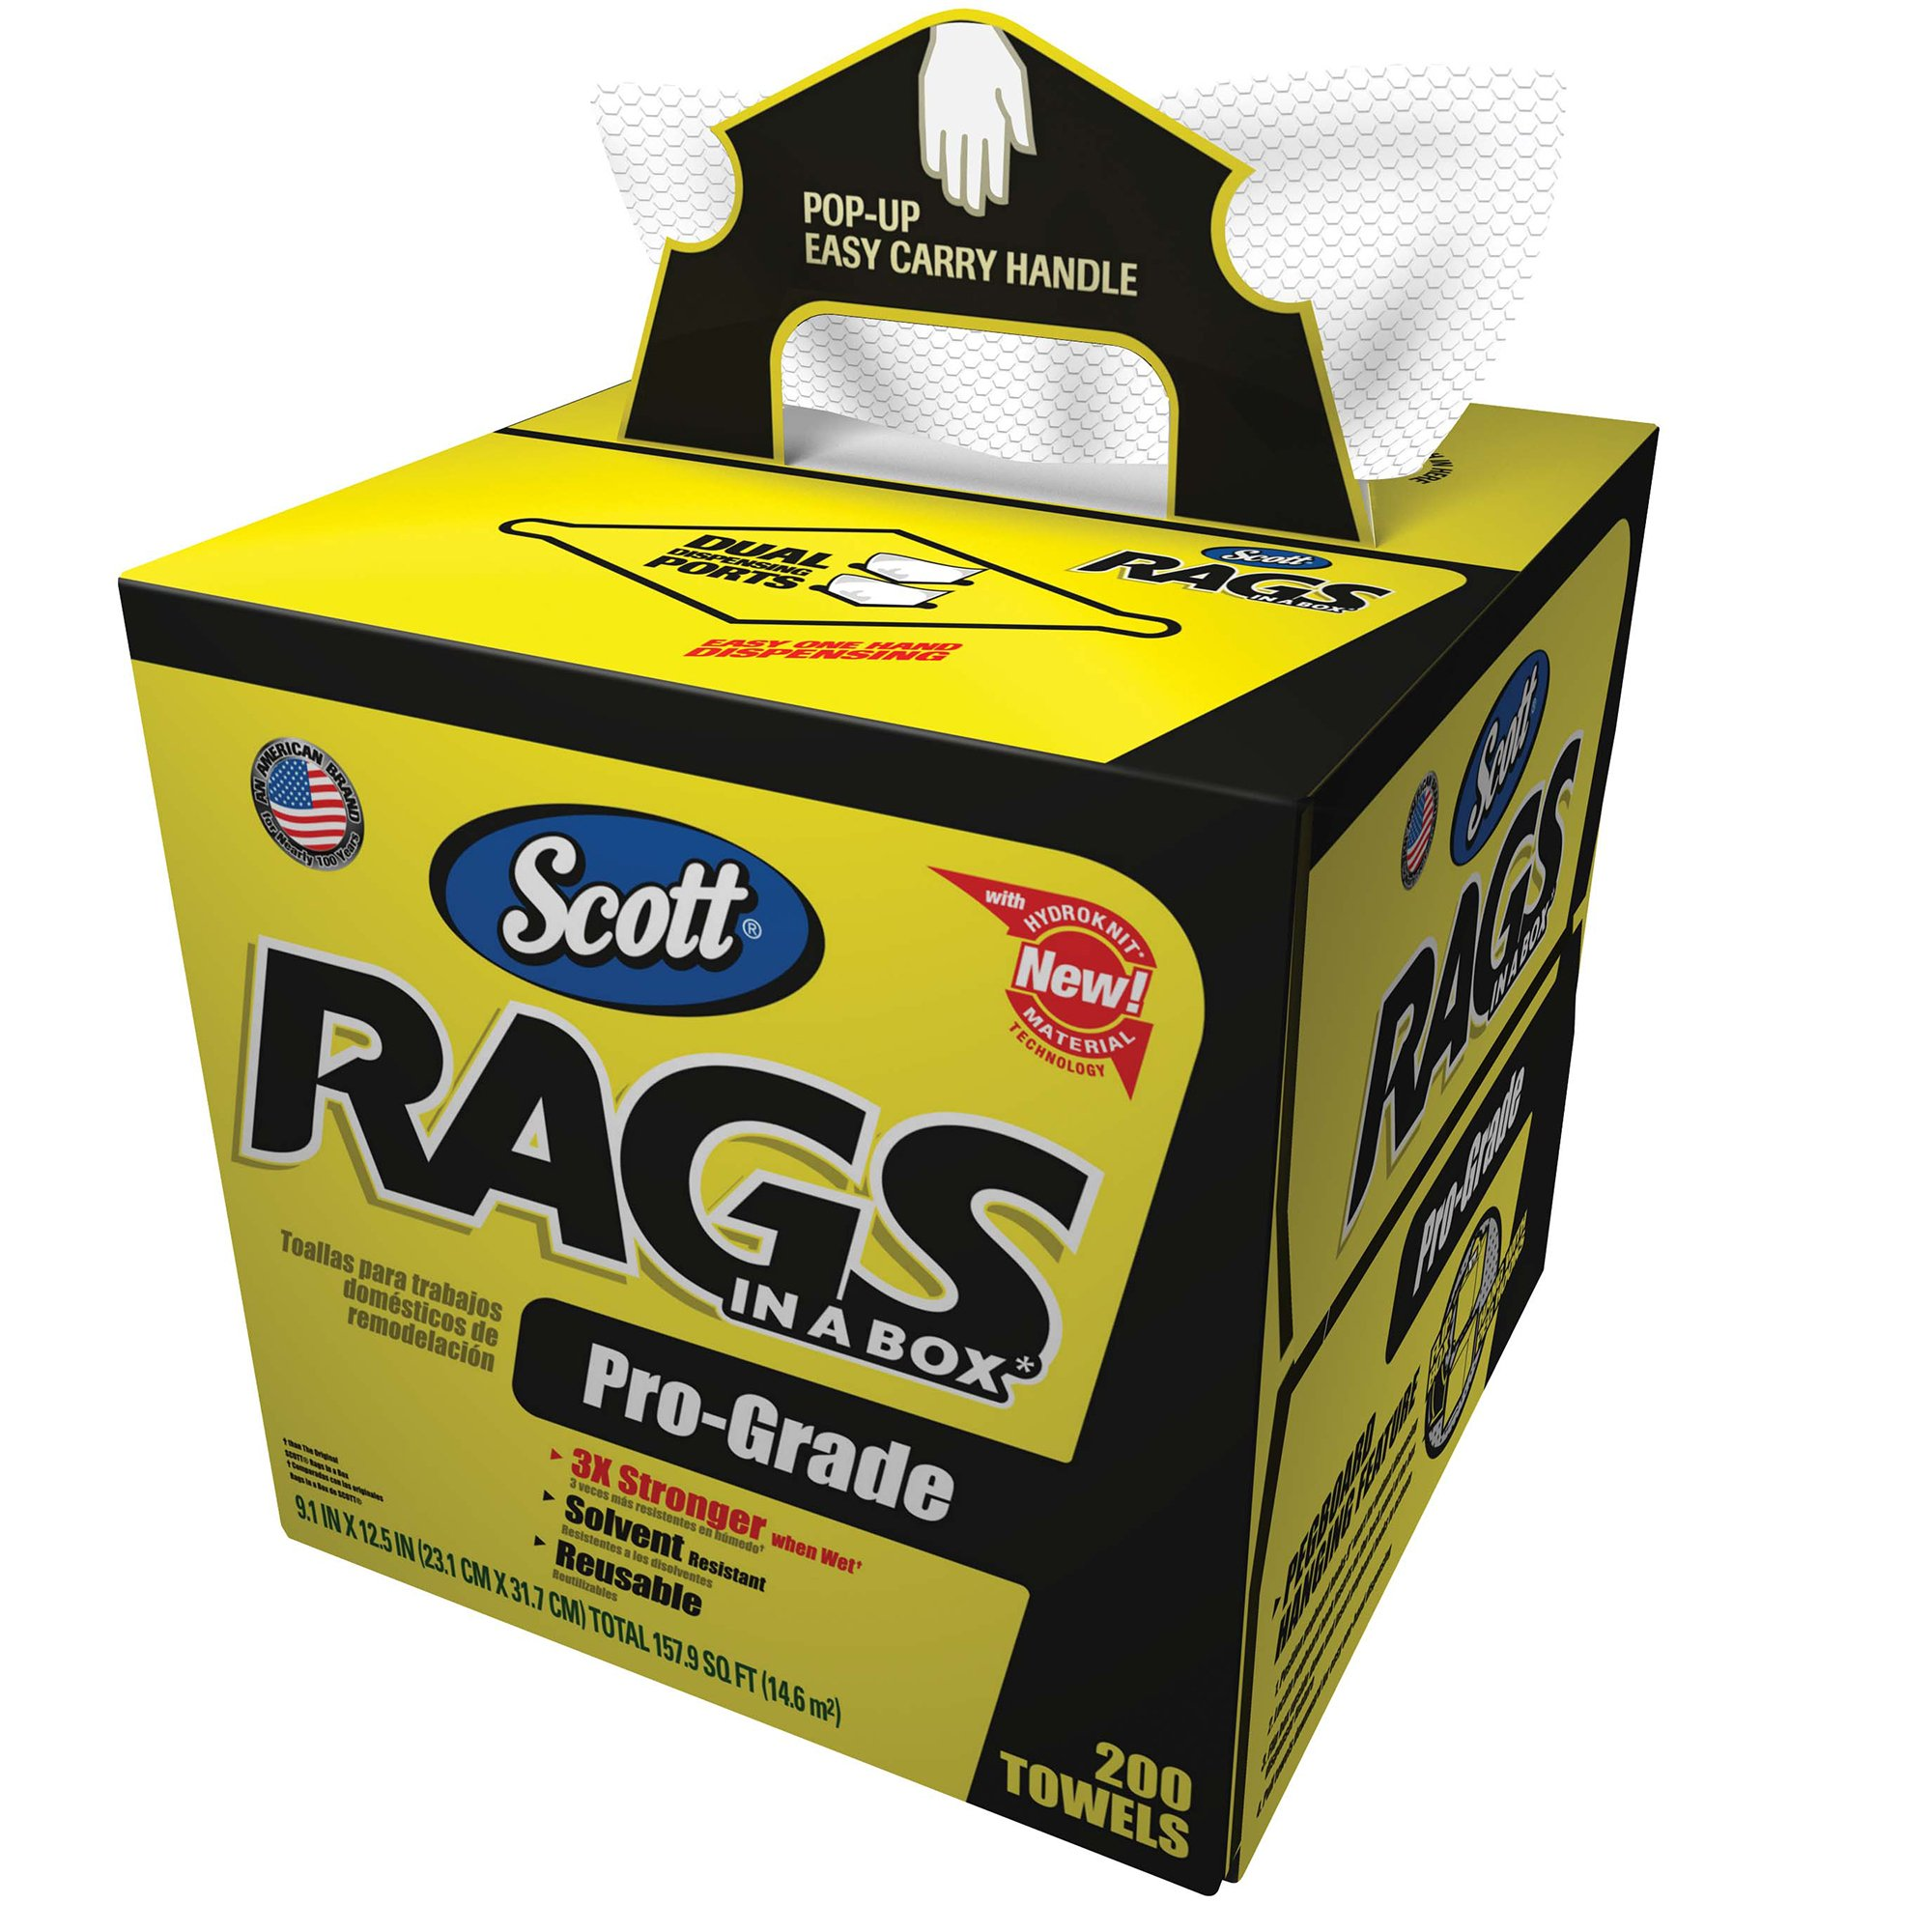 Scott Pro Grade Rags In A Box (39364), Shop Towels for Solvents & Heavy-Duty Jobs, White, 200 Wipes/POP-UP Box